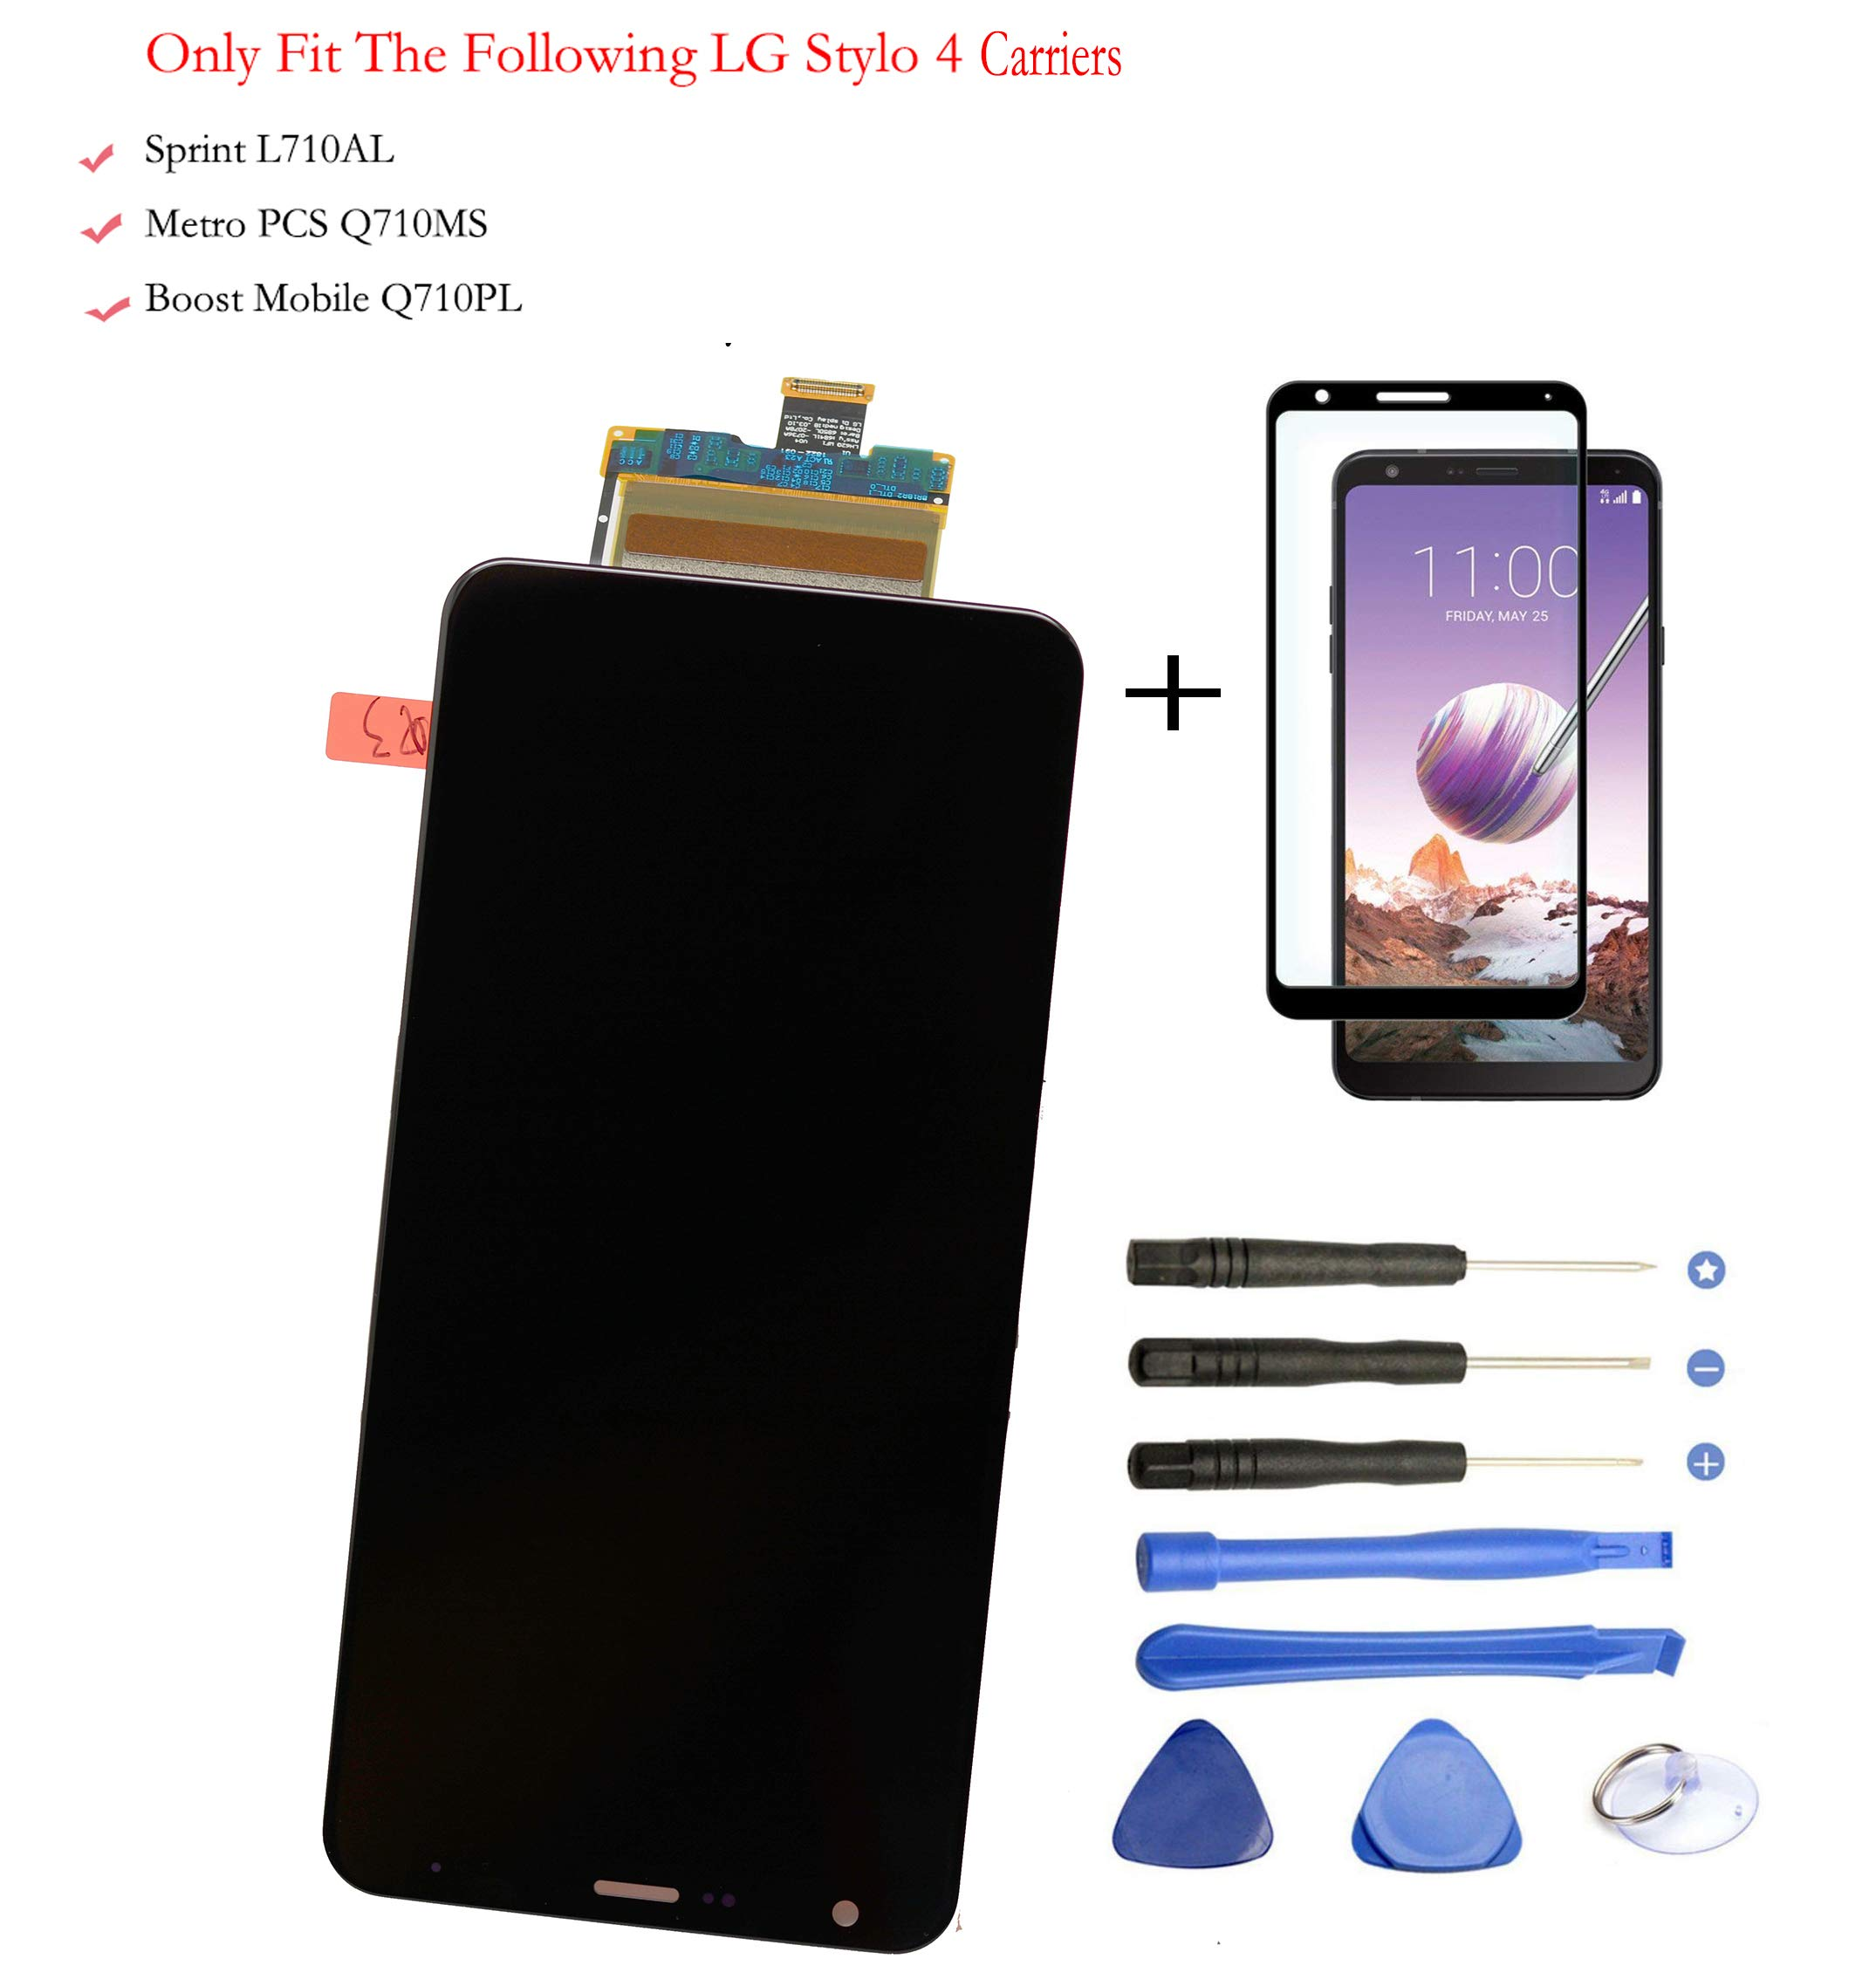 Eaglewireless LCD Touch Screen Digitizer Assembly Replacement for LG Stylo 4 Q710AL for Sprint and Q710MS for MetroPCS+Glass Protector by Eaglewireless